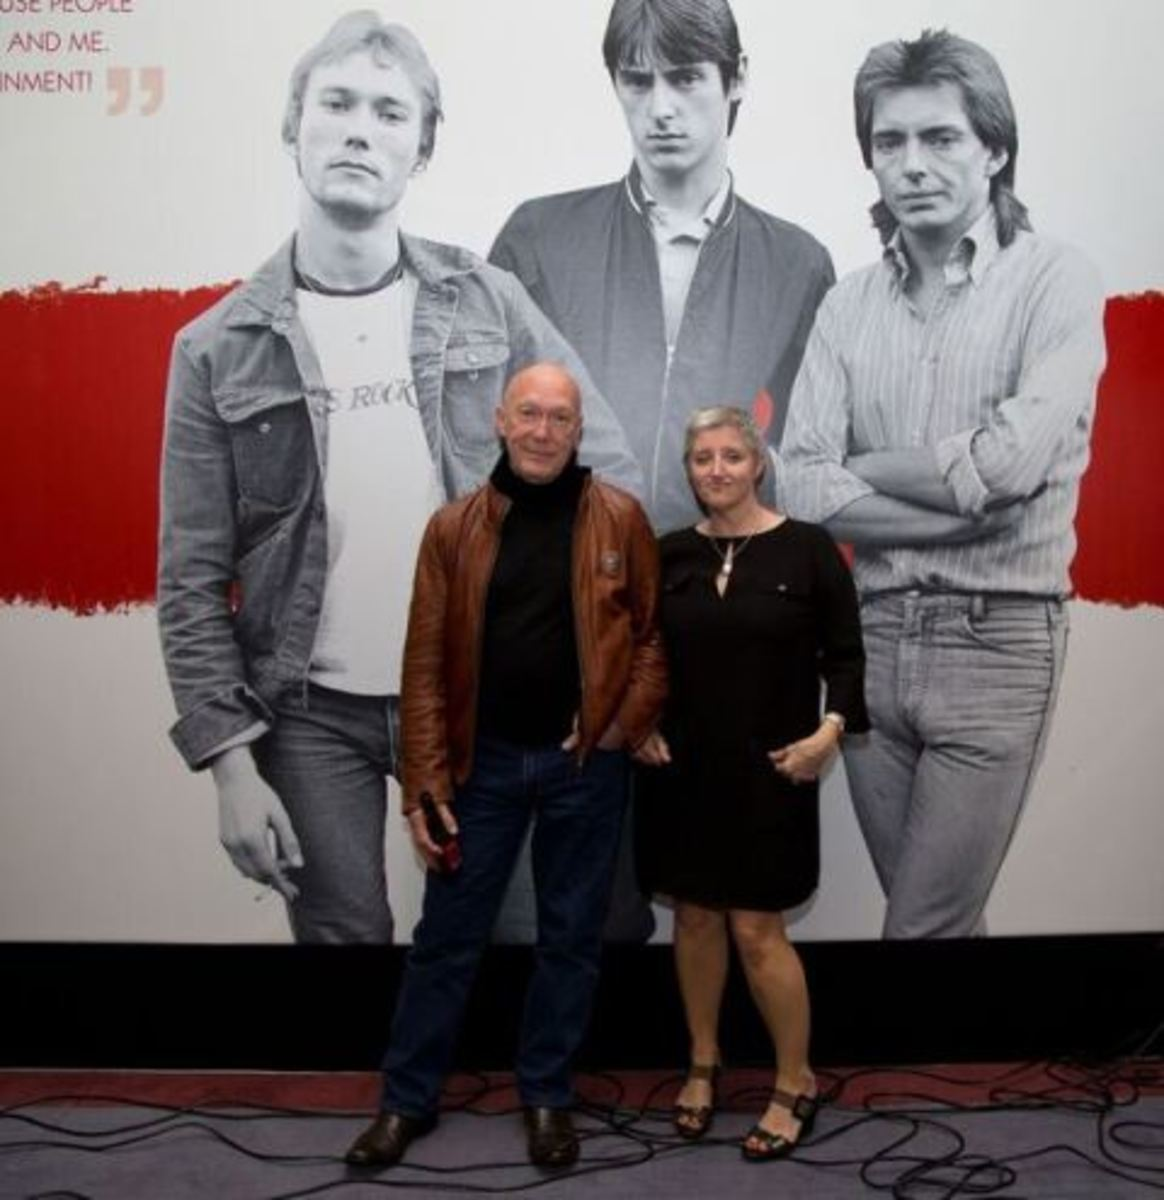 The Jam's drummer, Rick Buckler, and exhibition co-curator Nicky Weller at the opening of the Liverpool exhibition last month. (Photo by Dean Fardell for Nicetime Productions)